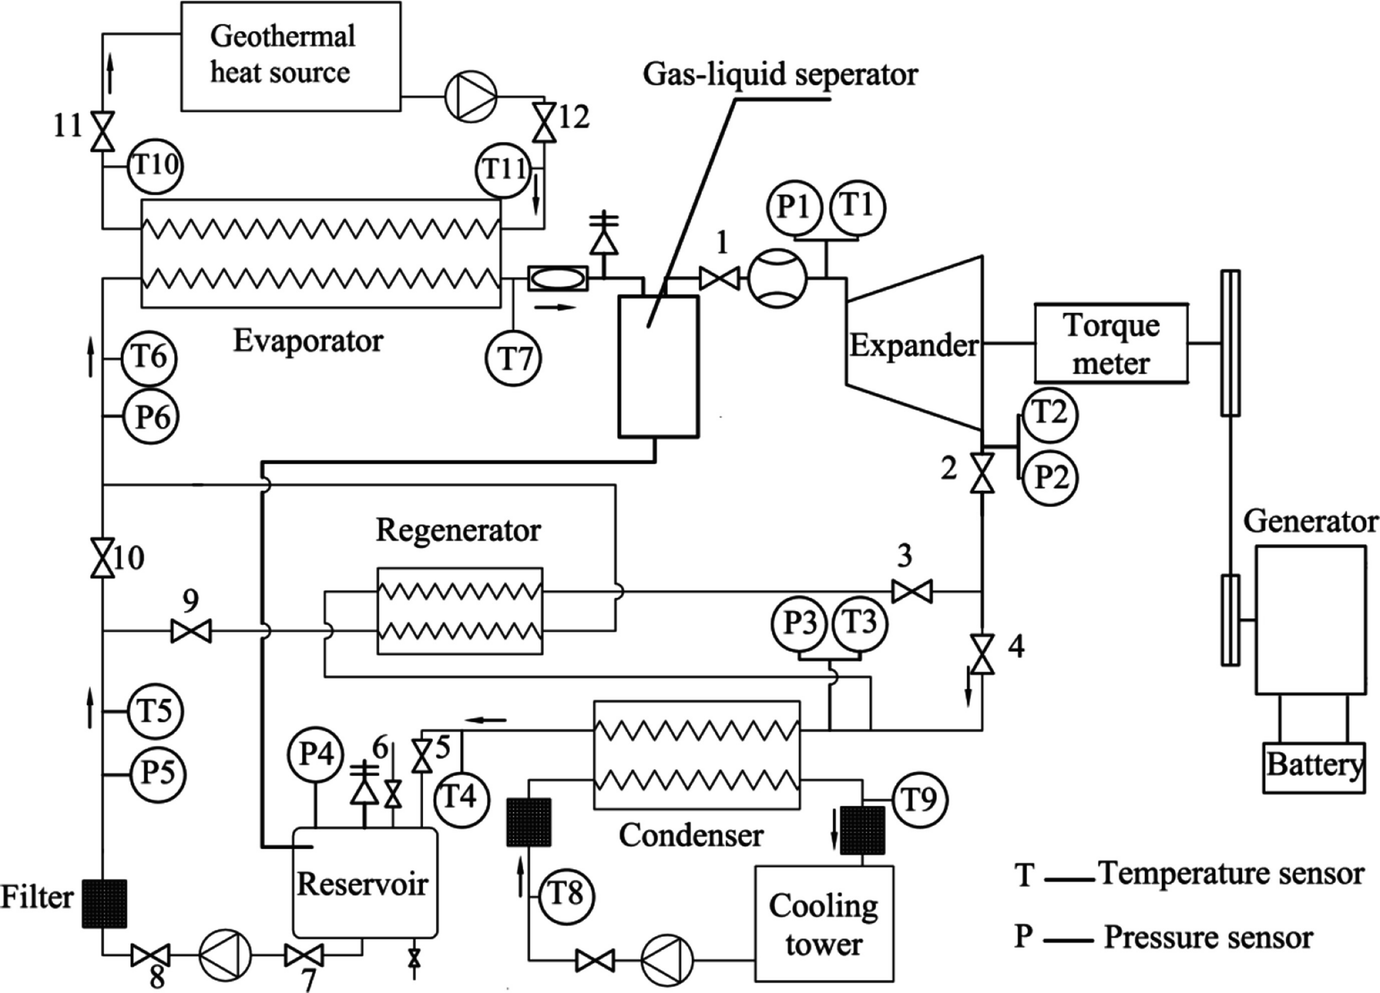 Integration Of Ground Source Heat Pump With Other Technologies 3 Ton Geothermal Wiring Diagram Fig 15 The Ghs Integrated Orc System